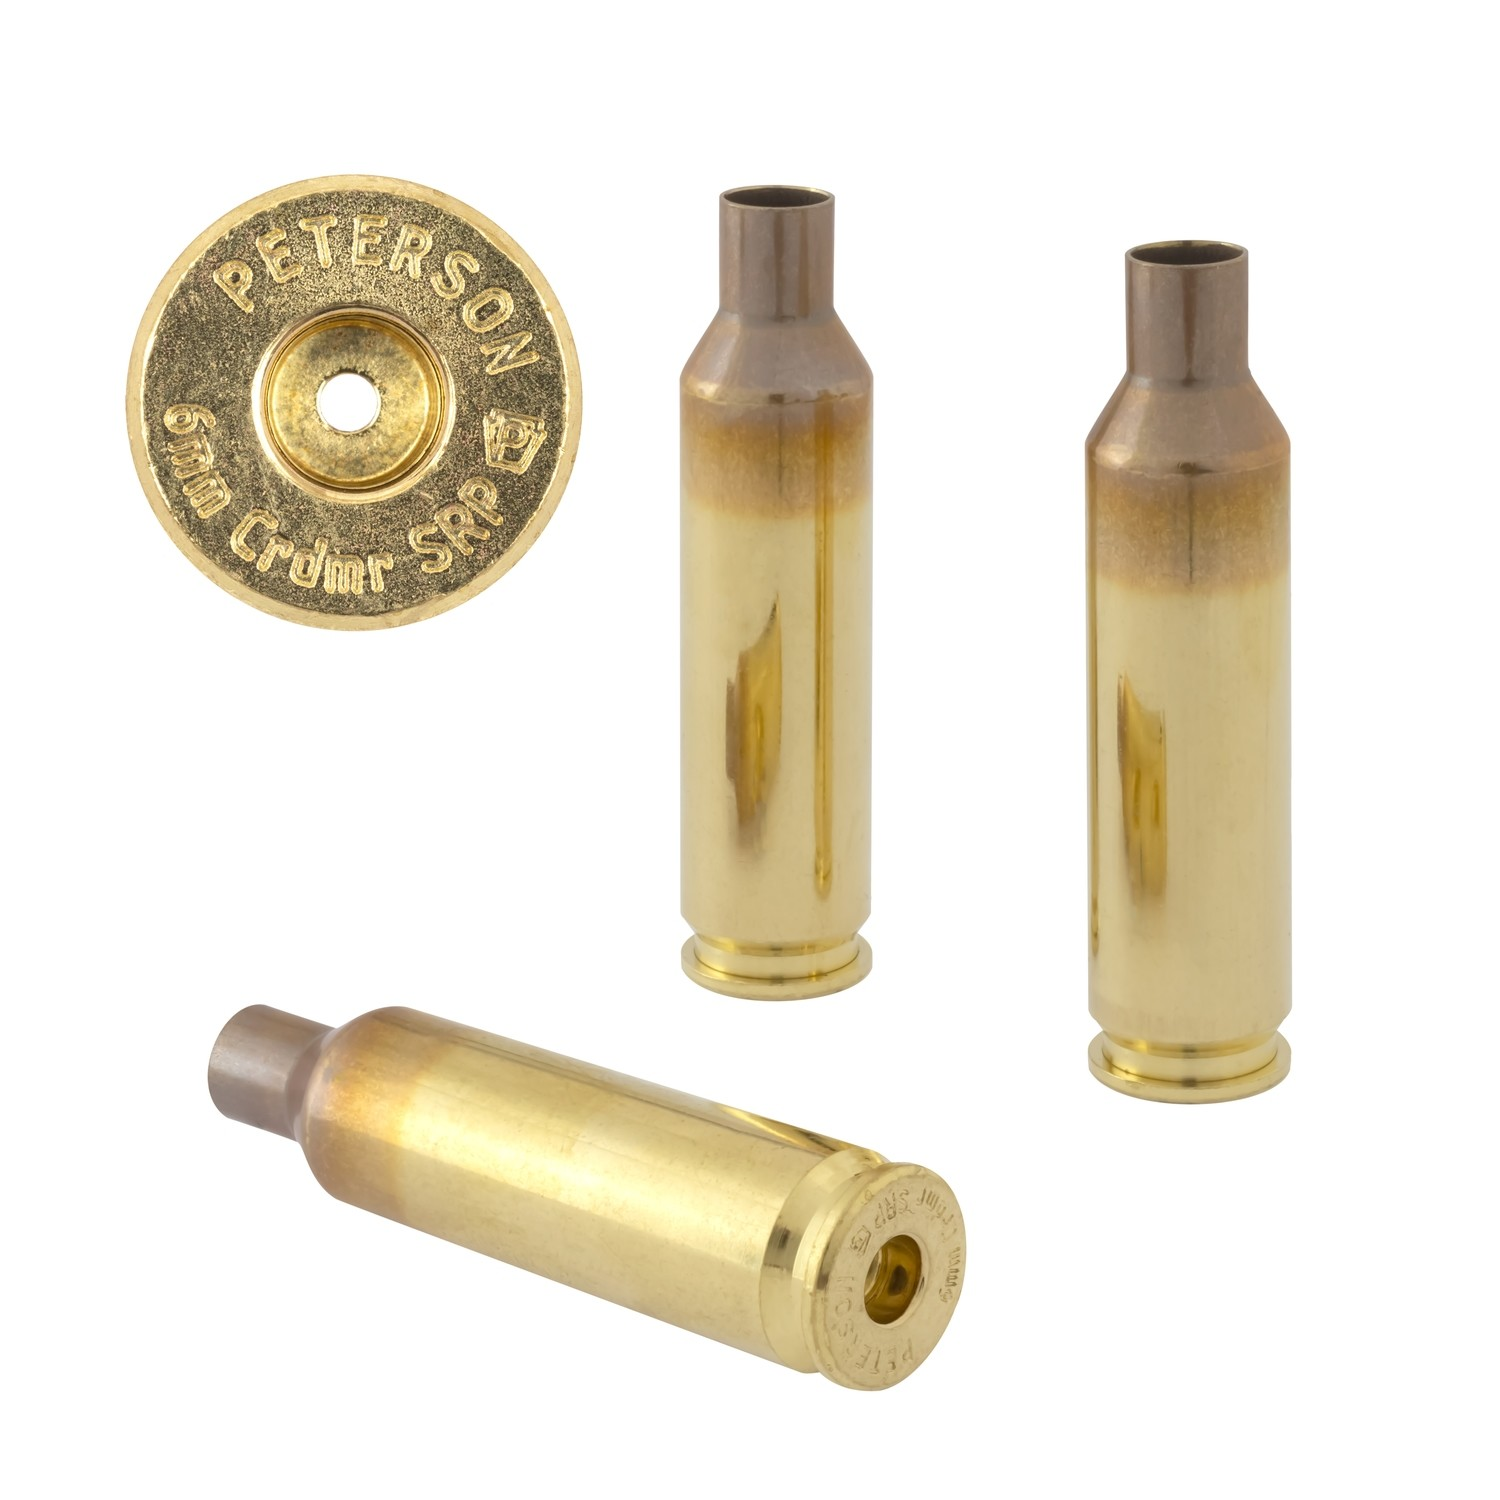 Peterson 6mm Crdmr SRP Select - Box of 50 Brass Rifle Casings